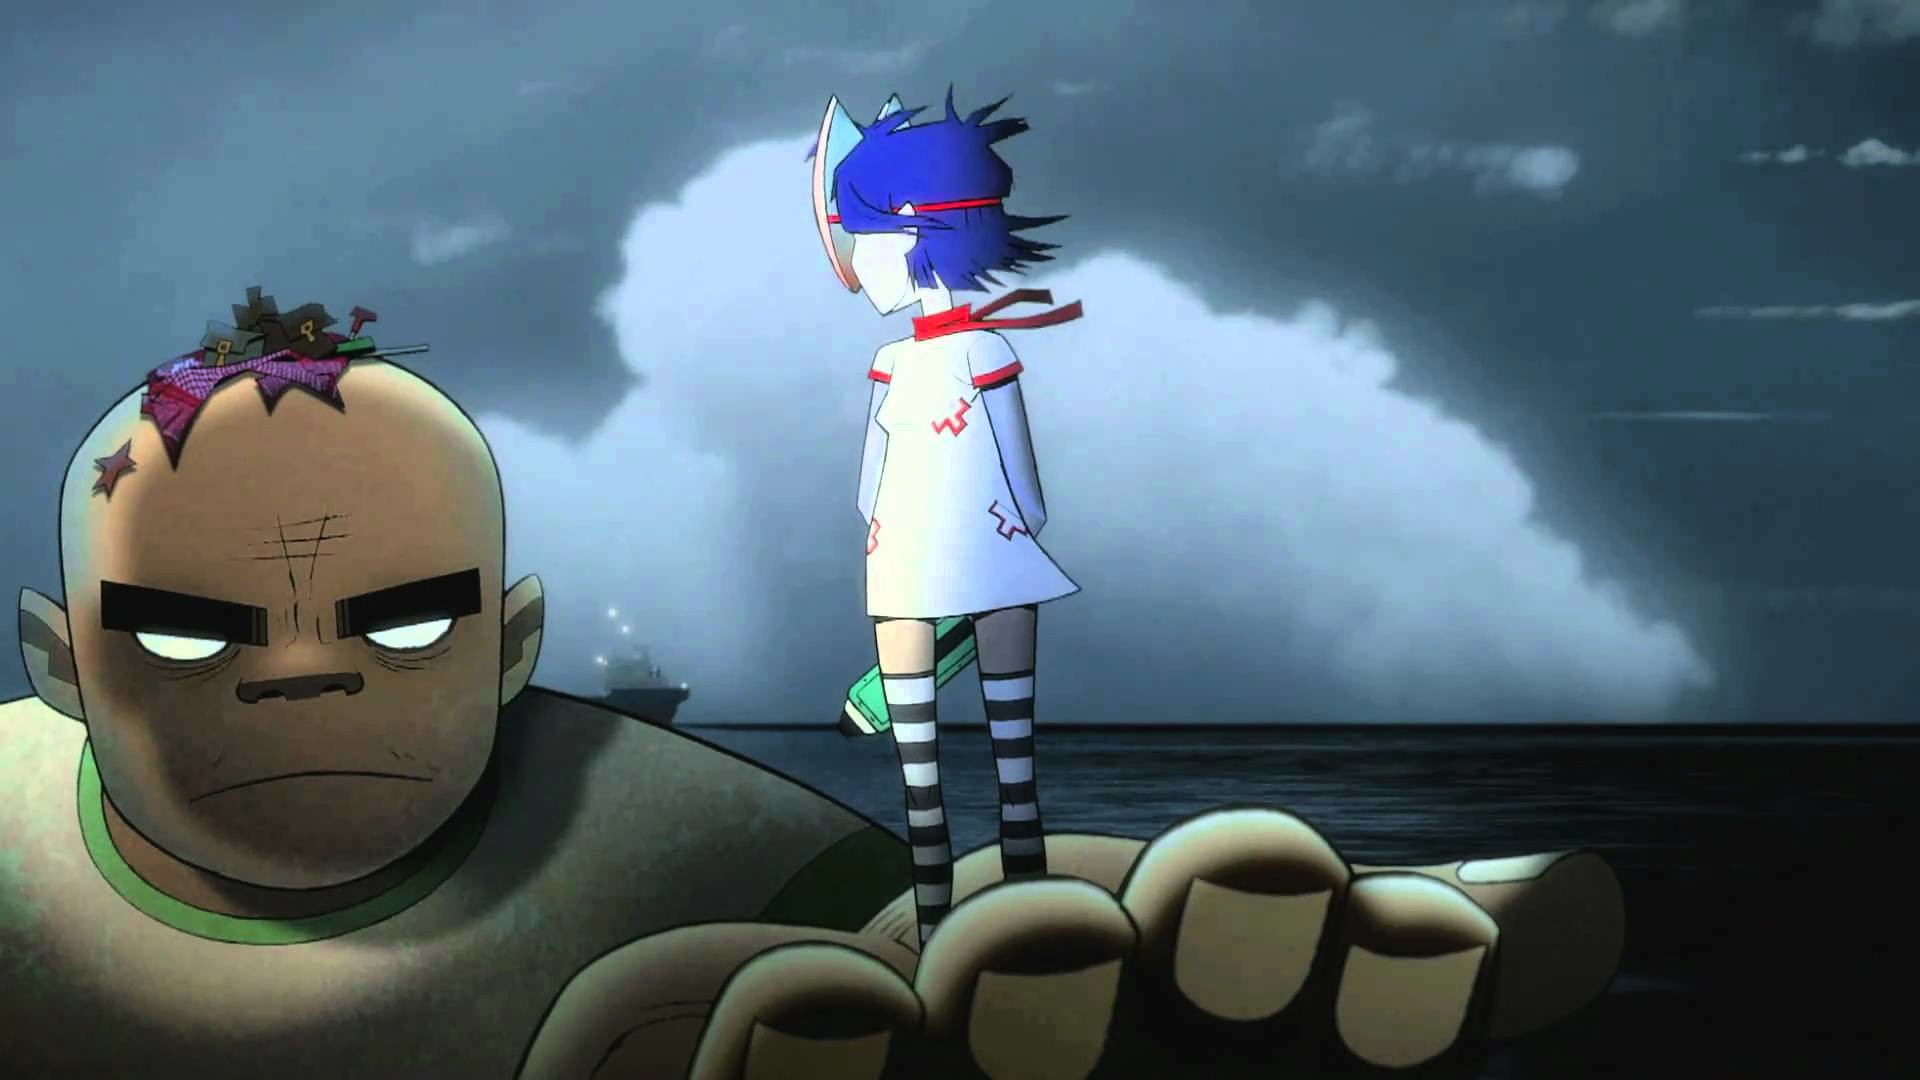 Gorillaz Wallpaper Plastic Beach 62 Images